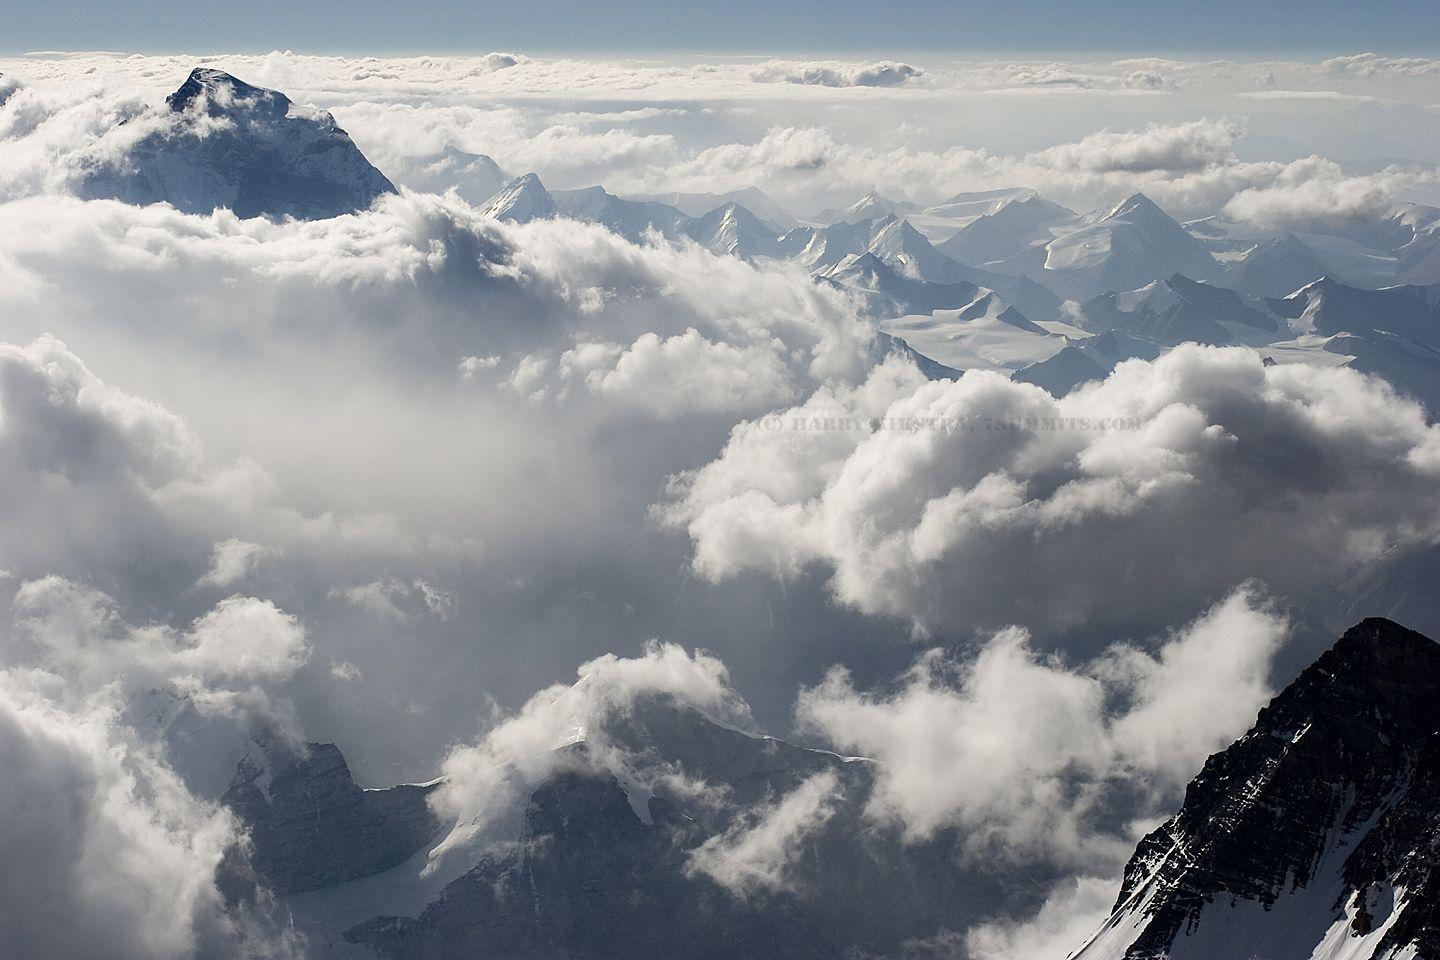 12 Mount Everest pictures and summit video added